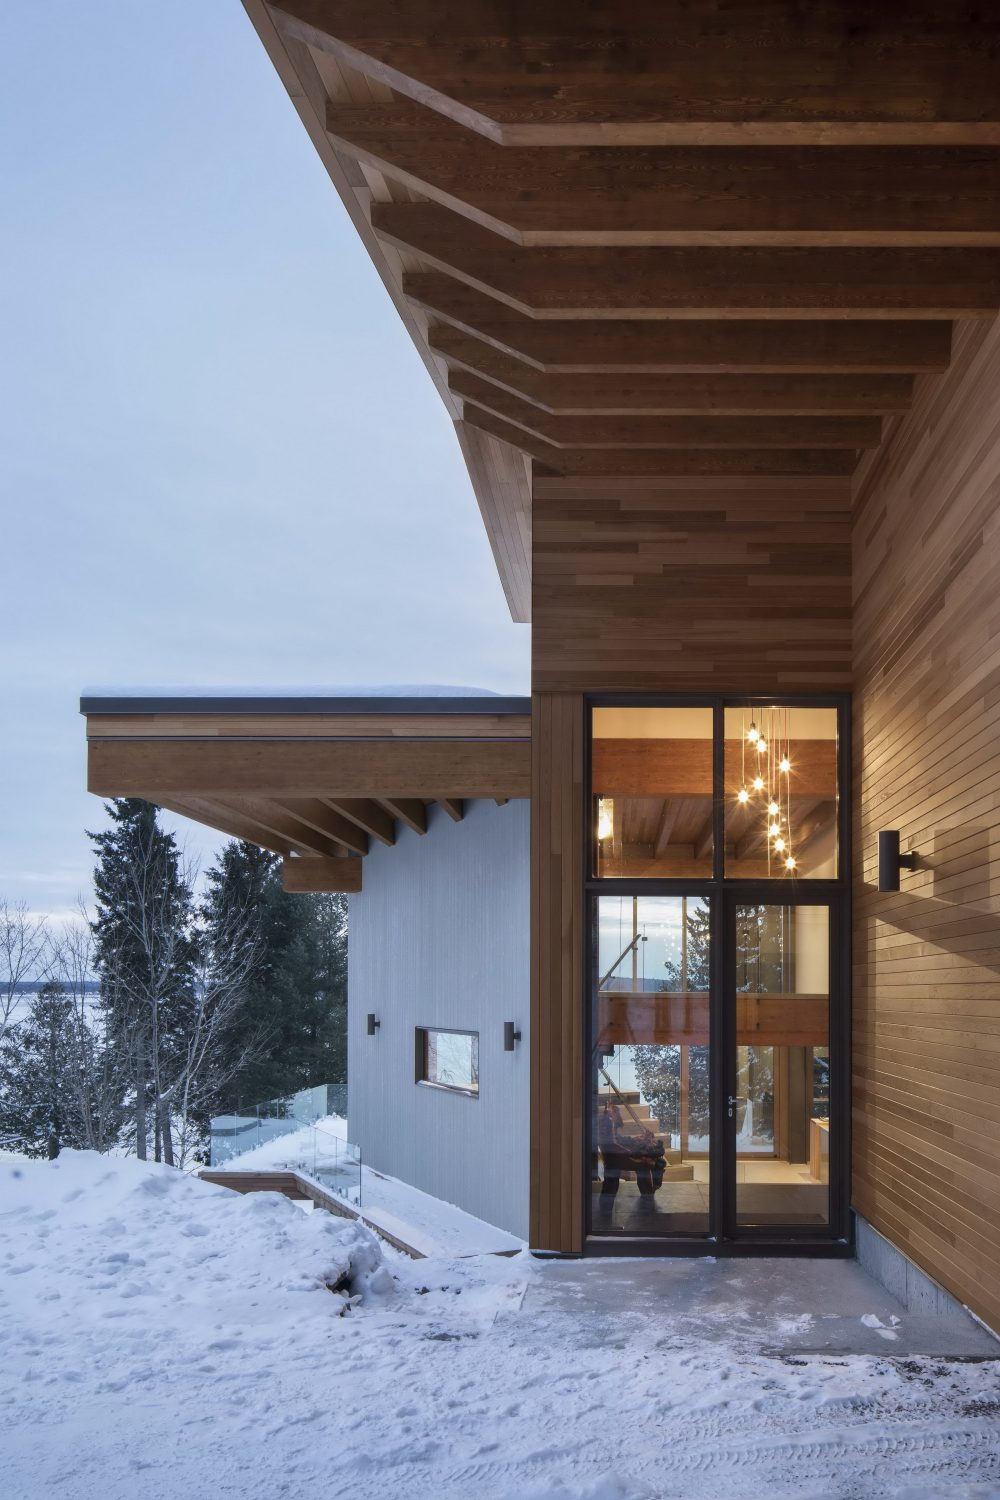 L'Accostée House by Bourgeois / Lechasseur architectes